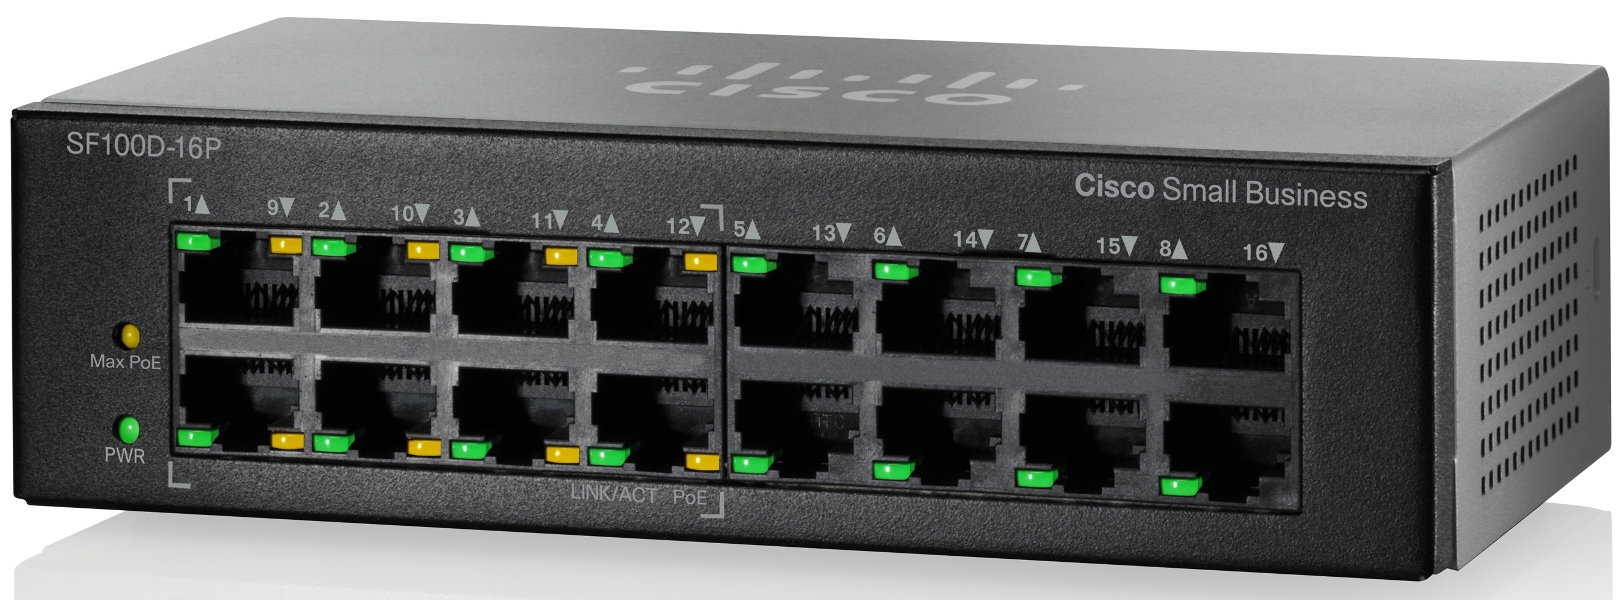 Cisco SF100D-16P, 16x10/100 PoE Desktop Switch